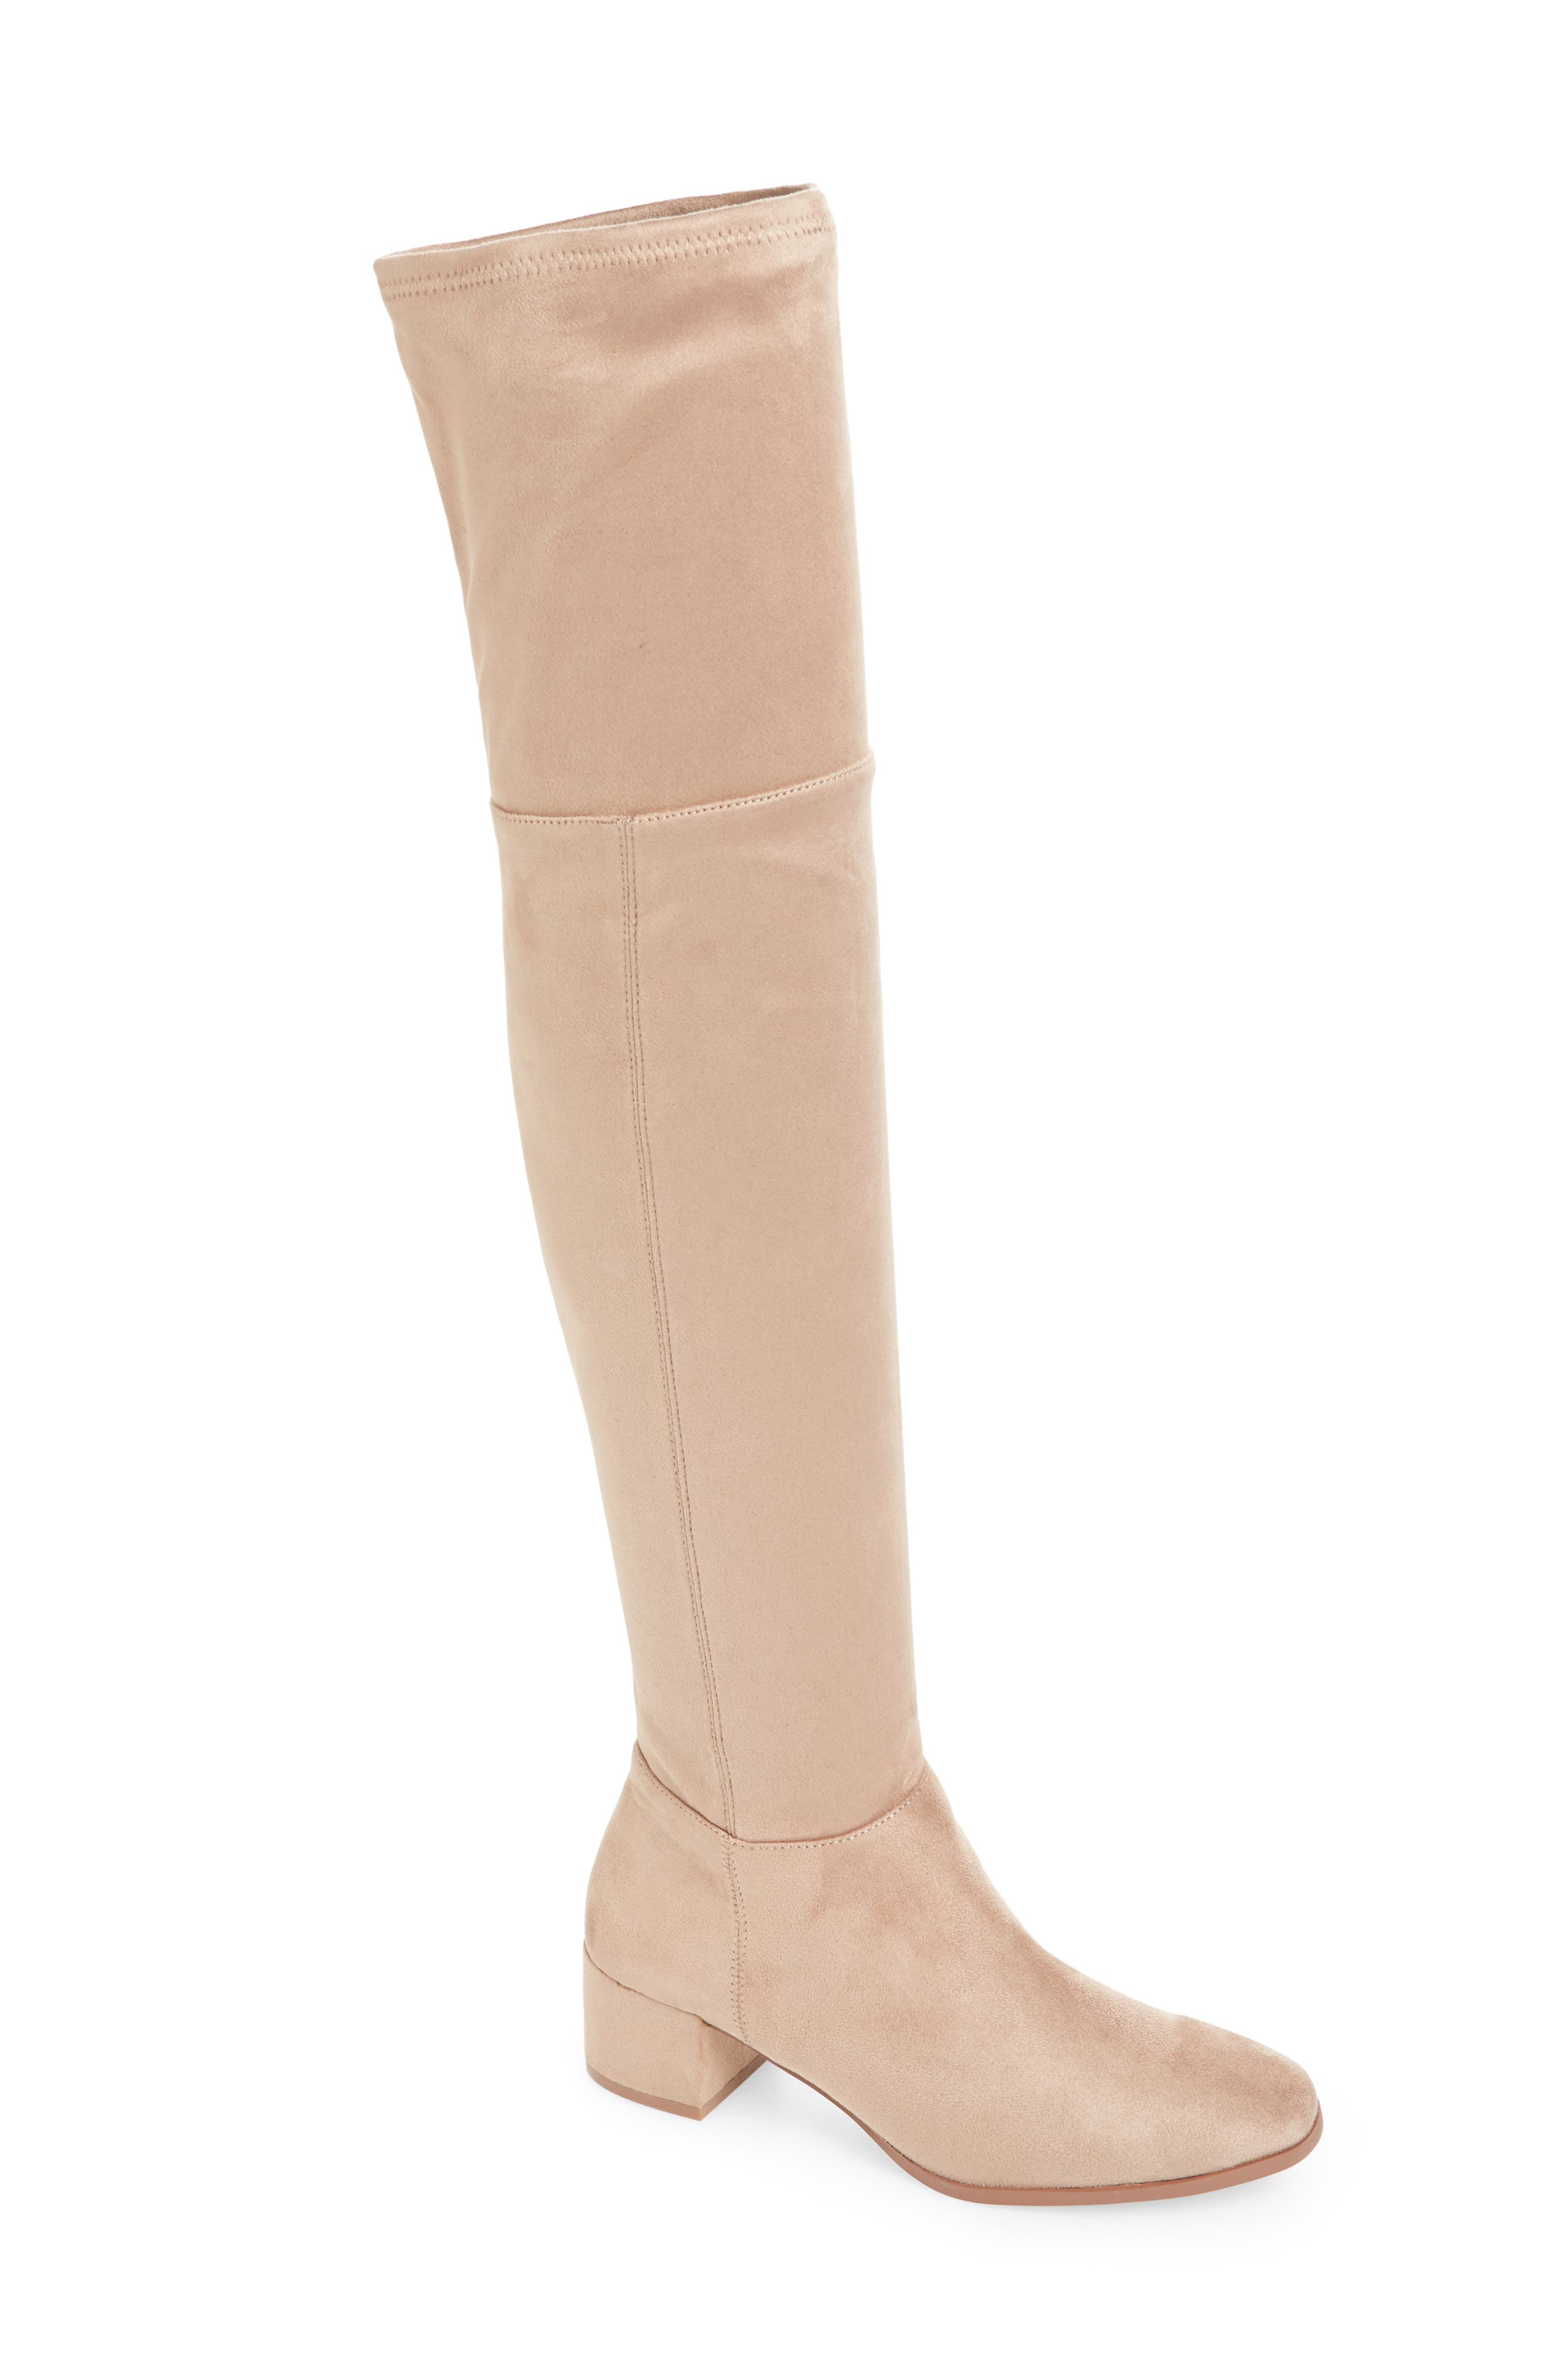 Chinese Laundry Felix Over The Knee Boot- Beige